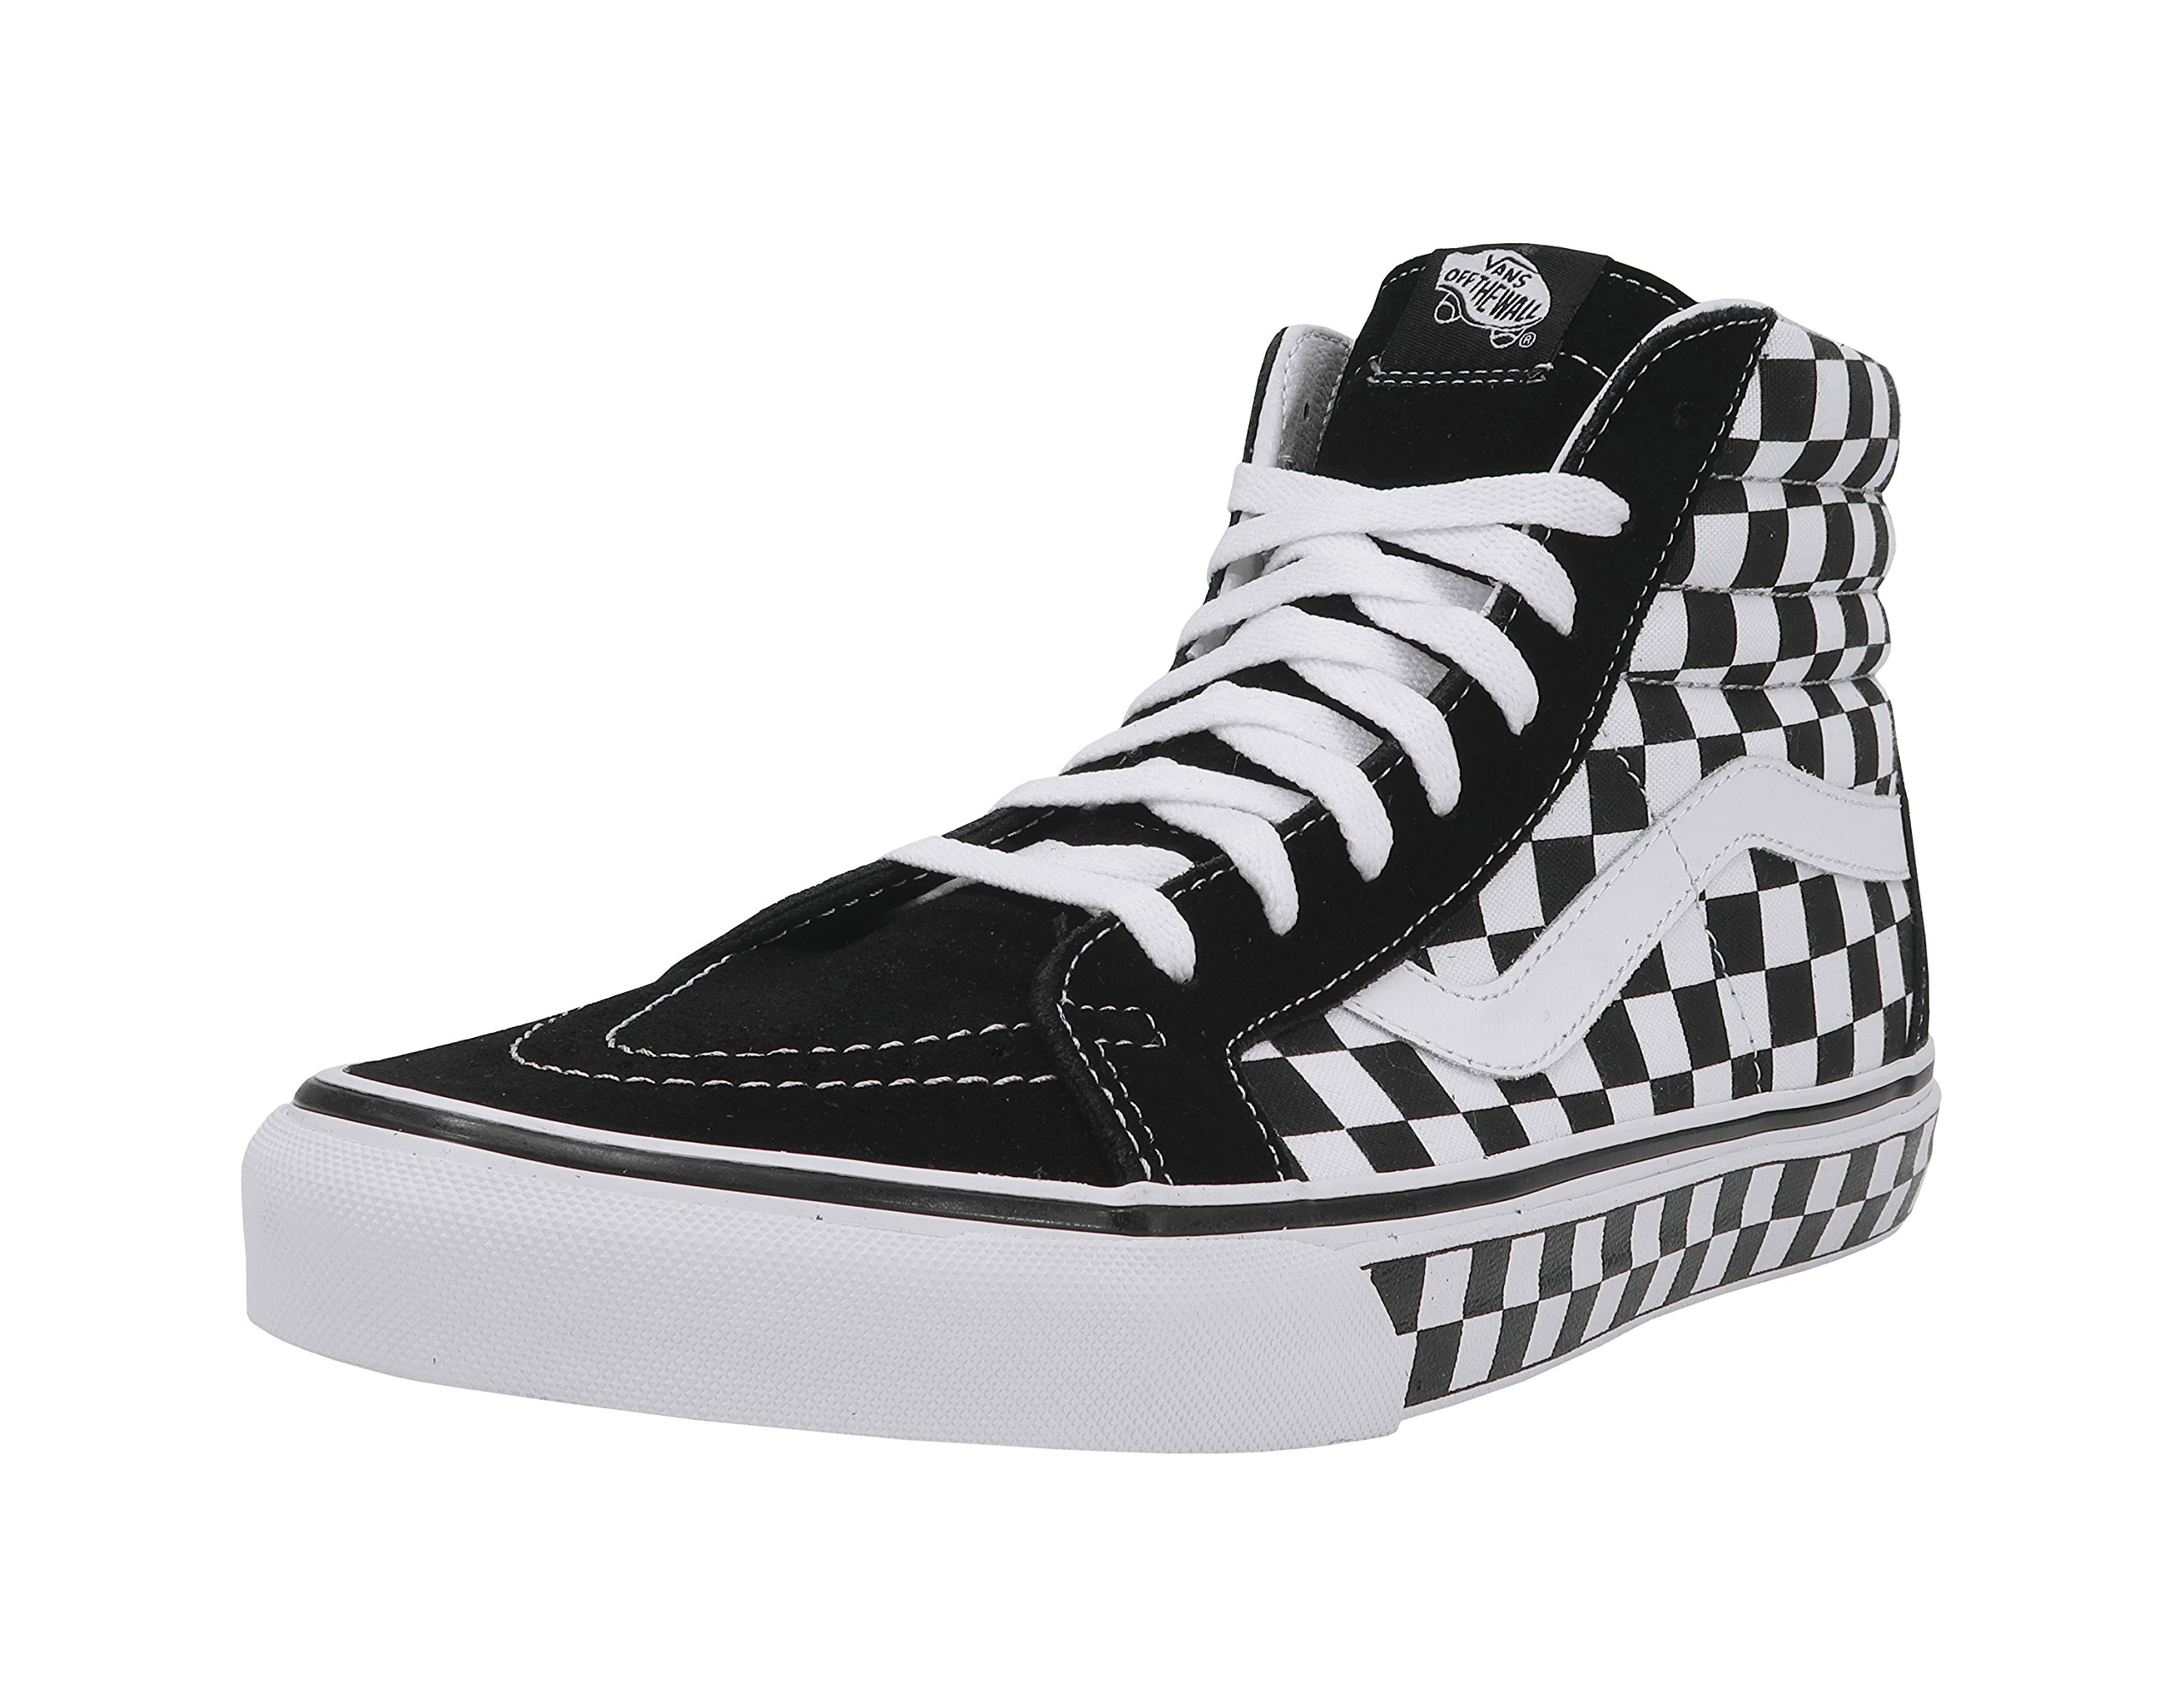 3fc9e046fb2 Galleon - Vans Unisex Checkerboard SK8-Hi Reissue Black True White Check  Sneaker - 13